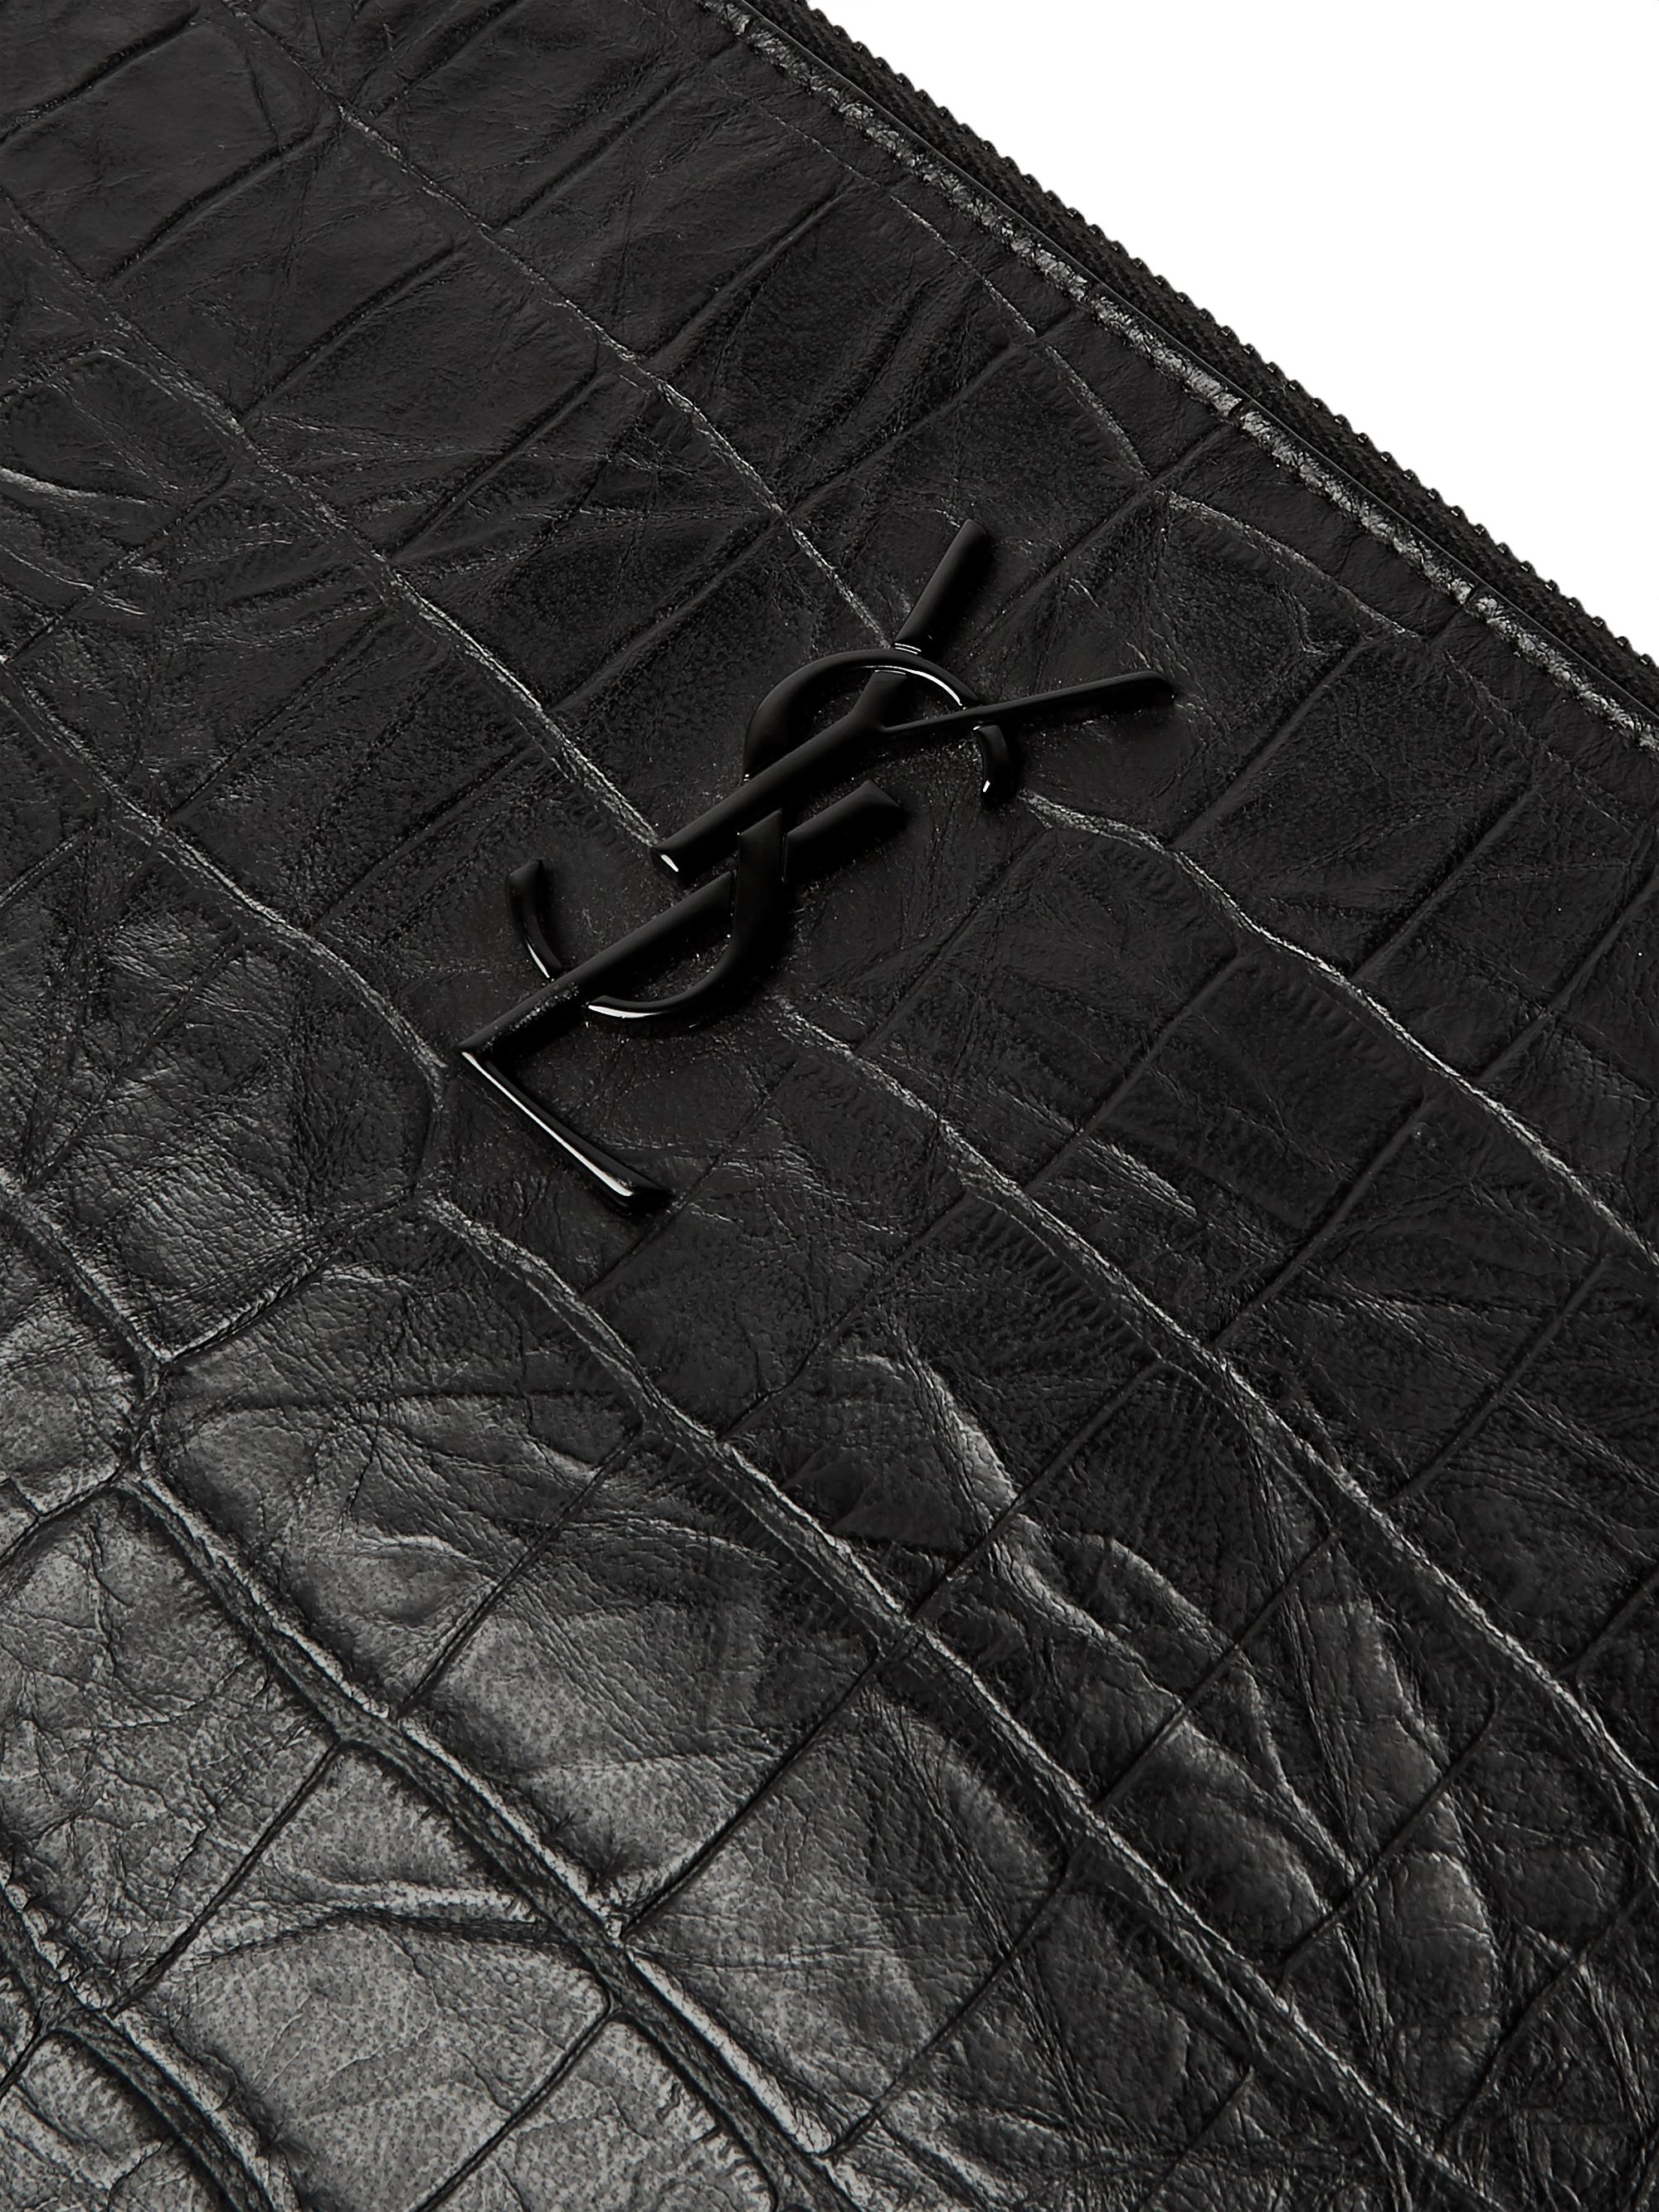 SAINT LAURENT Logo-Appliquéd Croc-Effect Leather Pouch